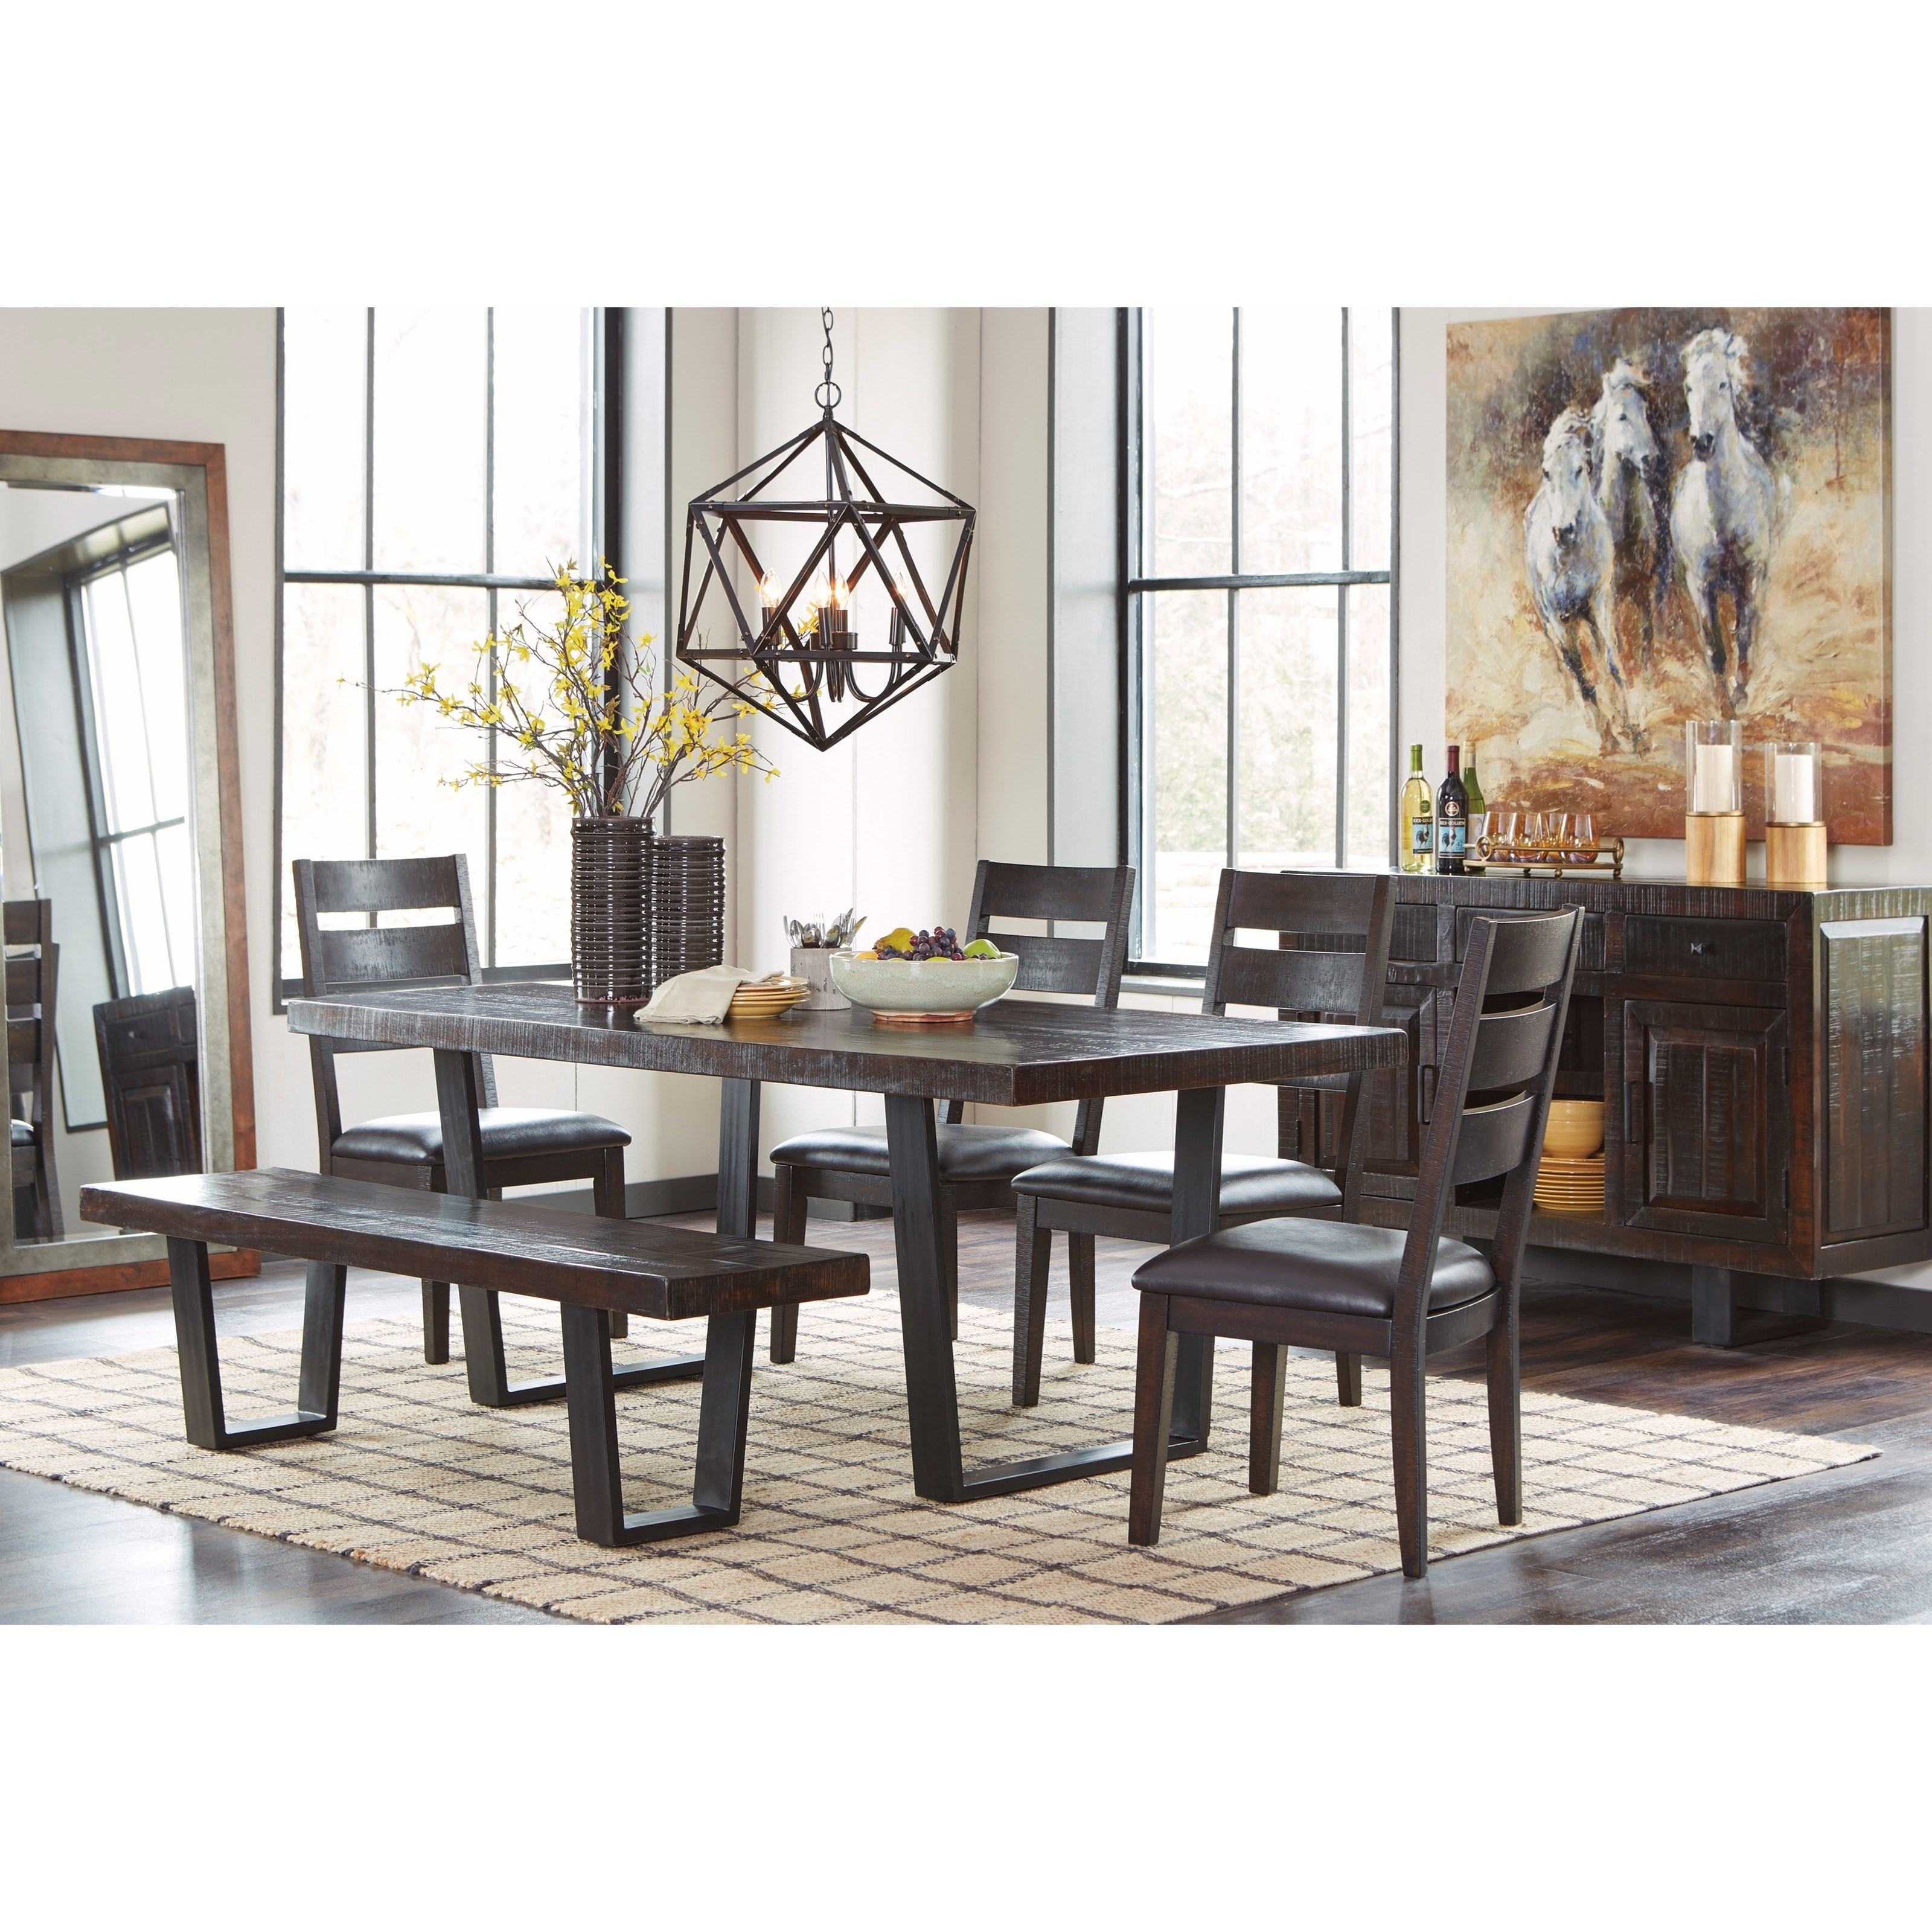 Modern Rustic Dining Room Table modern rustic dining room server with metal sled style metal legs